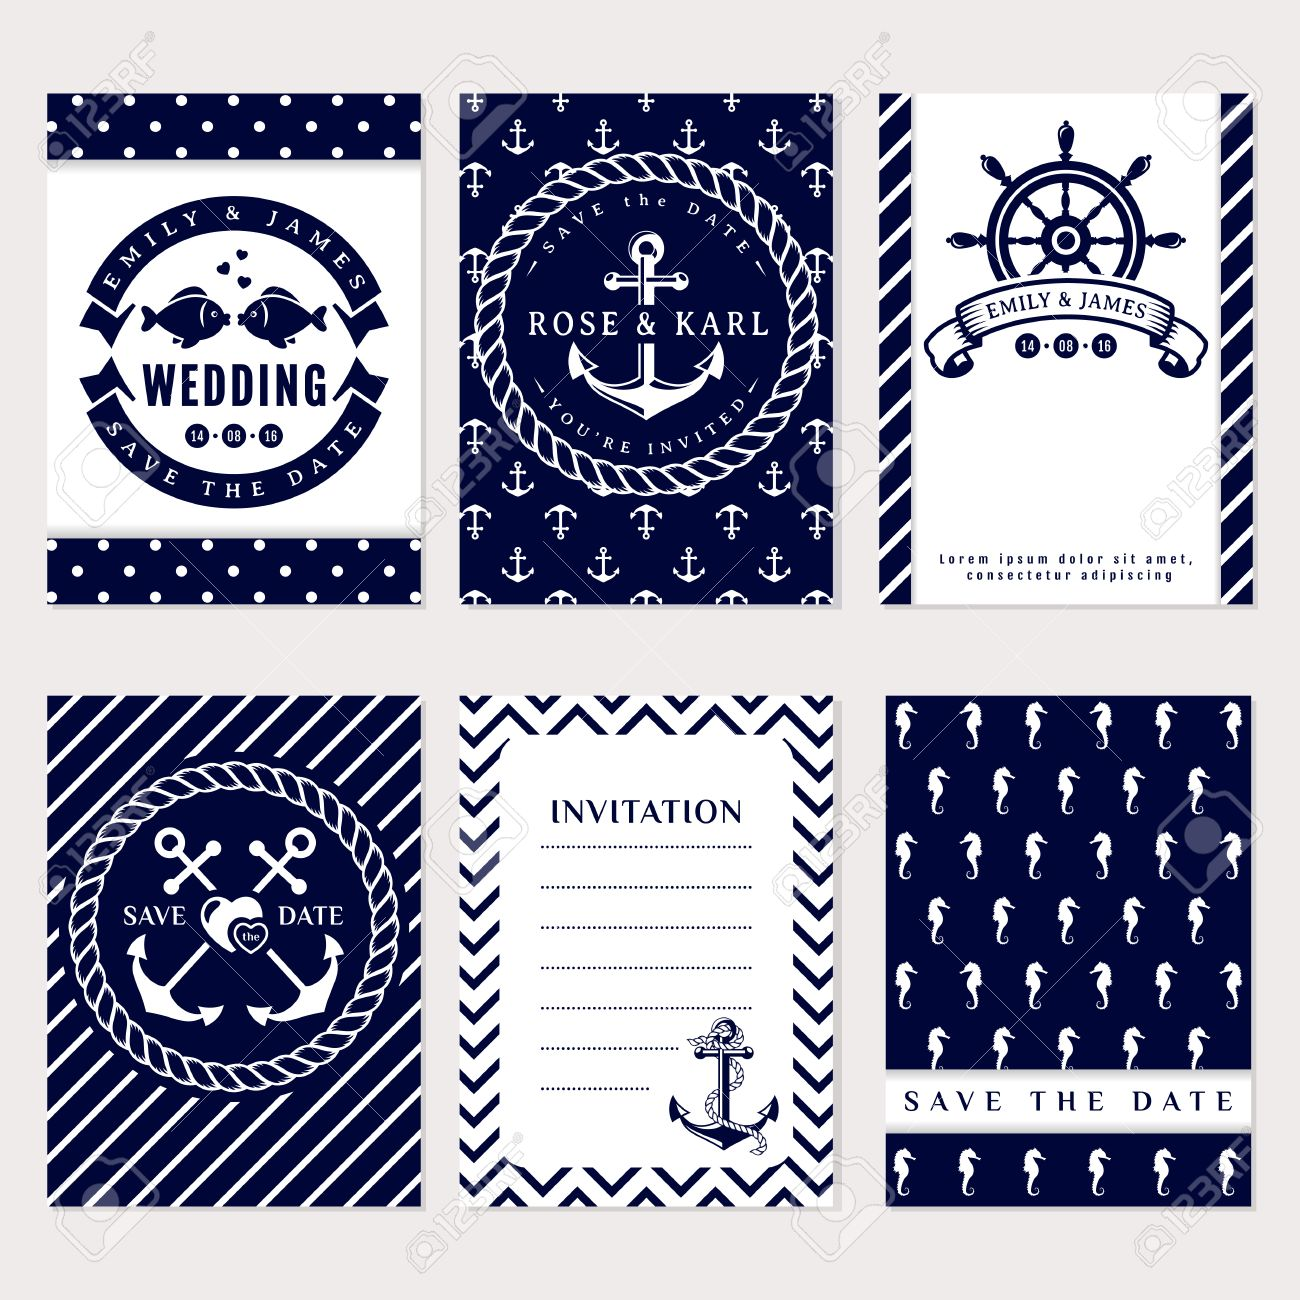 Nautical Wedding Invitation Cards. Sea Theme Wedding Party ...